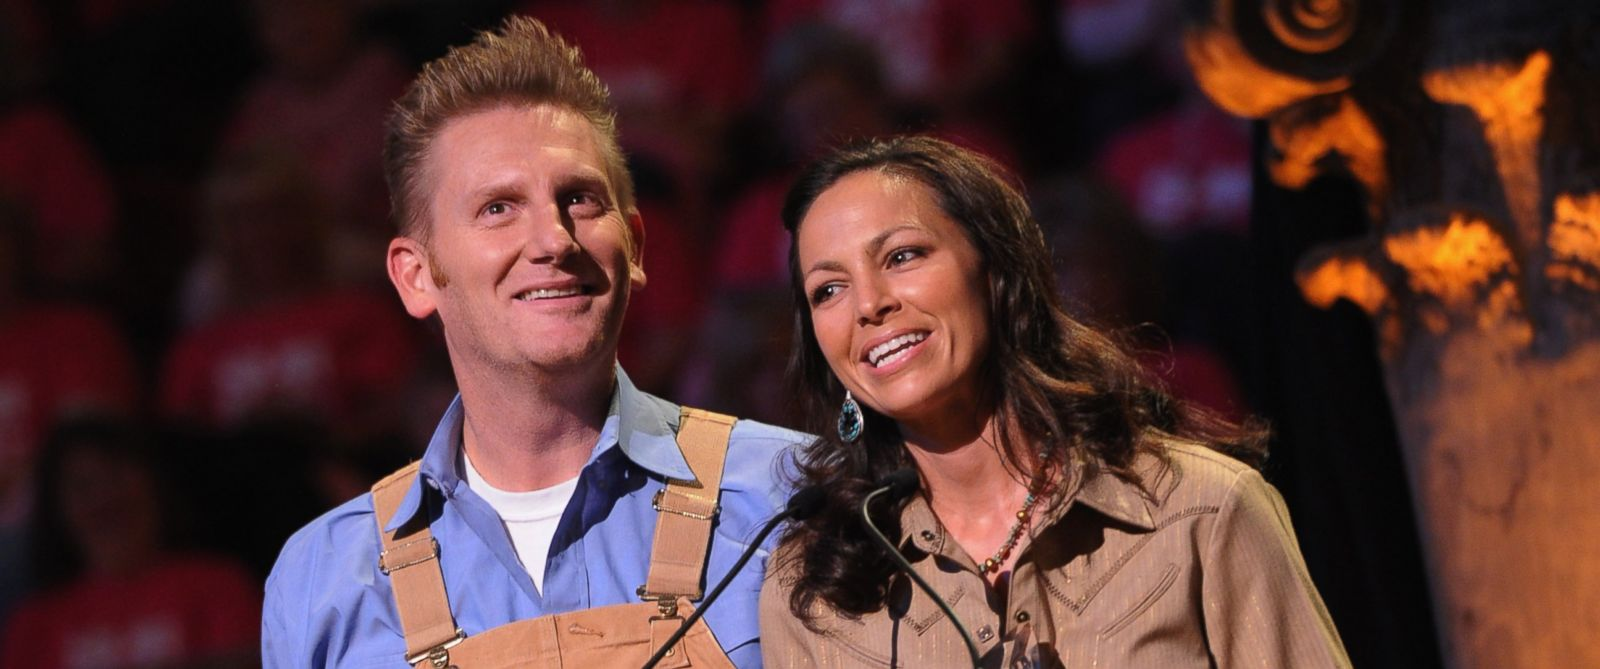 """PHOTO: Joey Martin Feek and Rory Feek accept """"Vocal Duo of the Year"""" at The 17th Annual Inspirational Country Music Awards at Schermerhorn Symphony Center on Oct. 28, 2011 in Nashville, Tenn."""